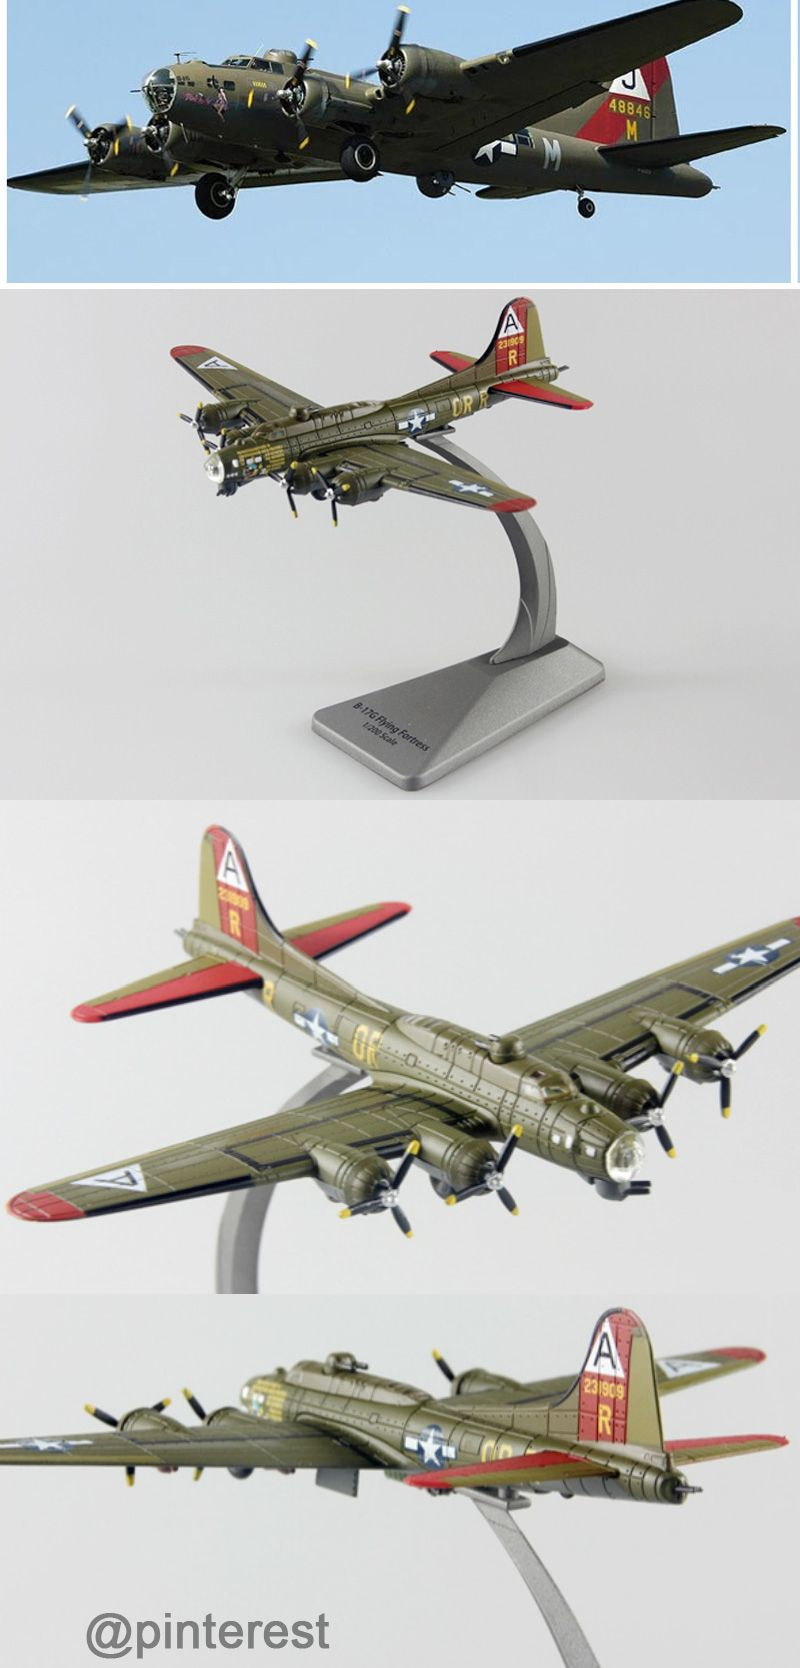 1:200 Scale Military Model Boeing B-17 Flying Fortress Bomber ...